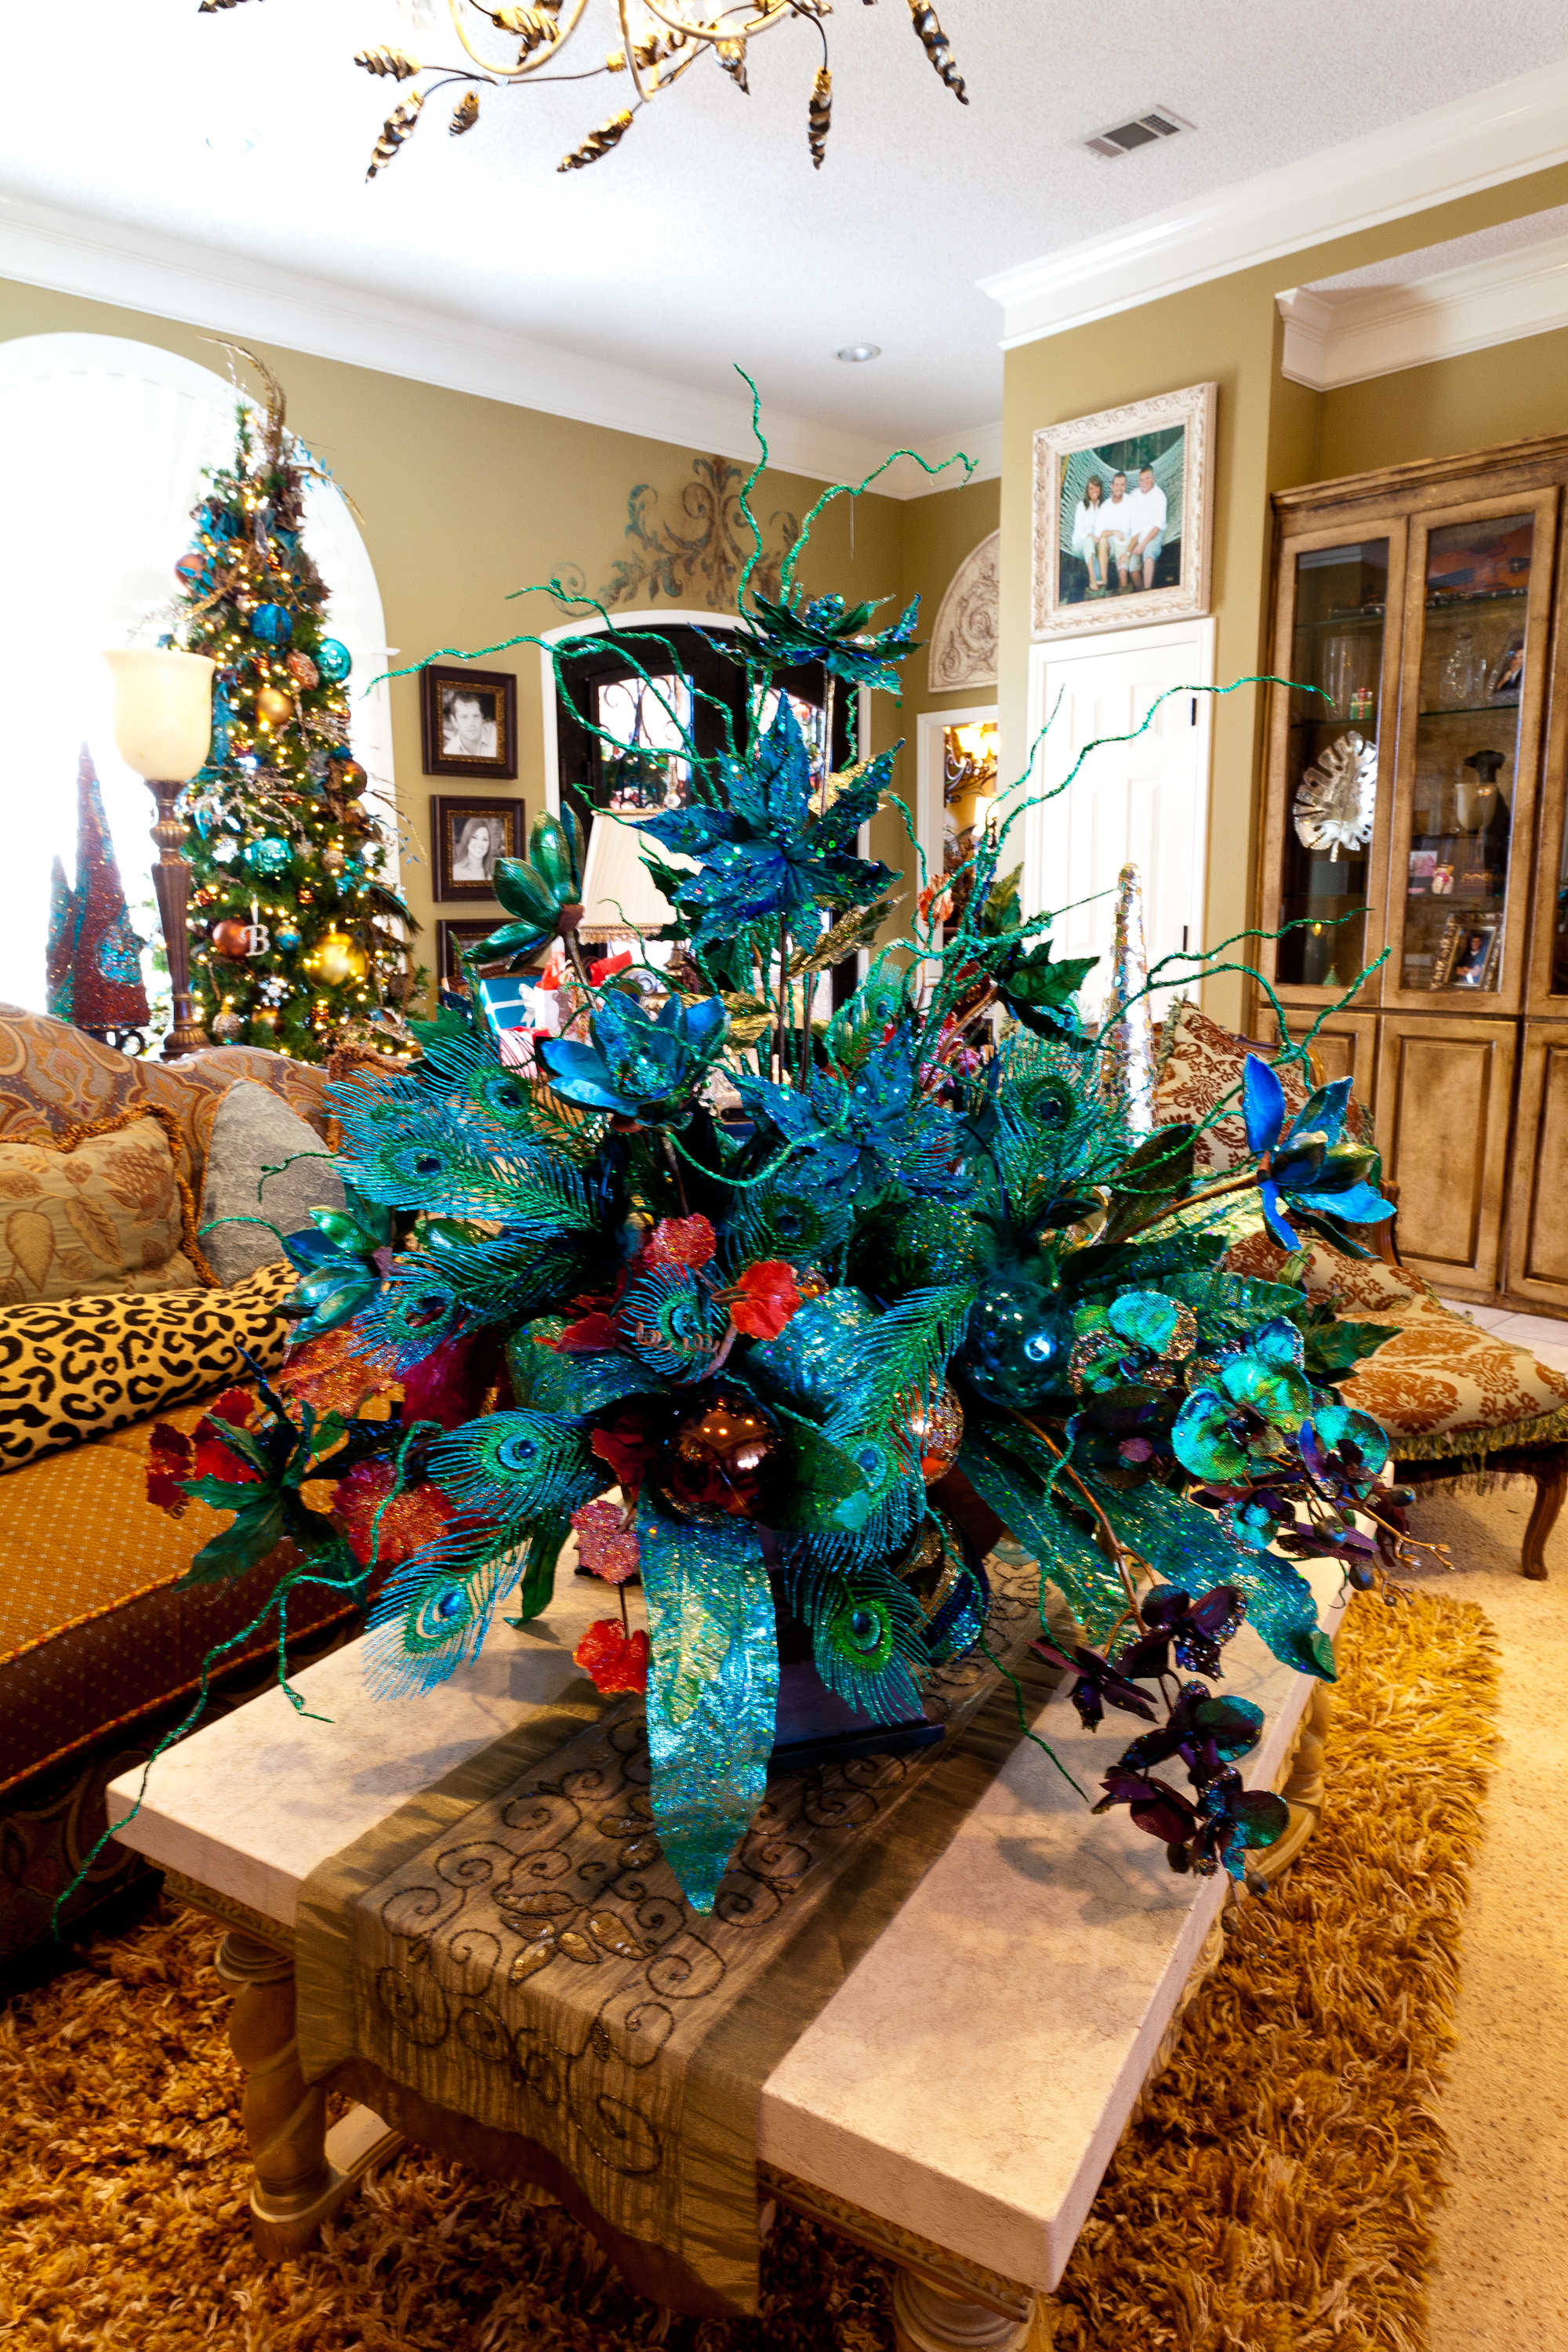 mom this tree decorations trees peacock beautifully more unusual ideas needs decor one pin of her my christmas topper for